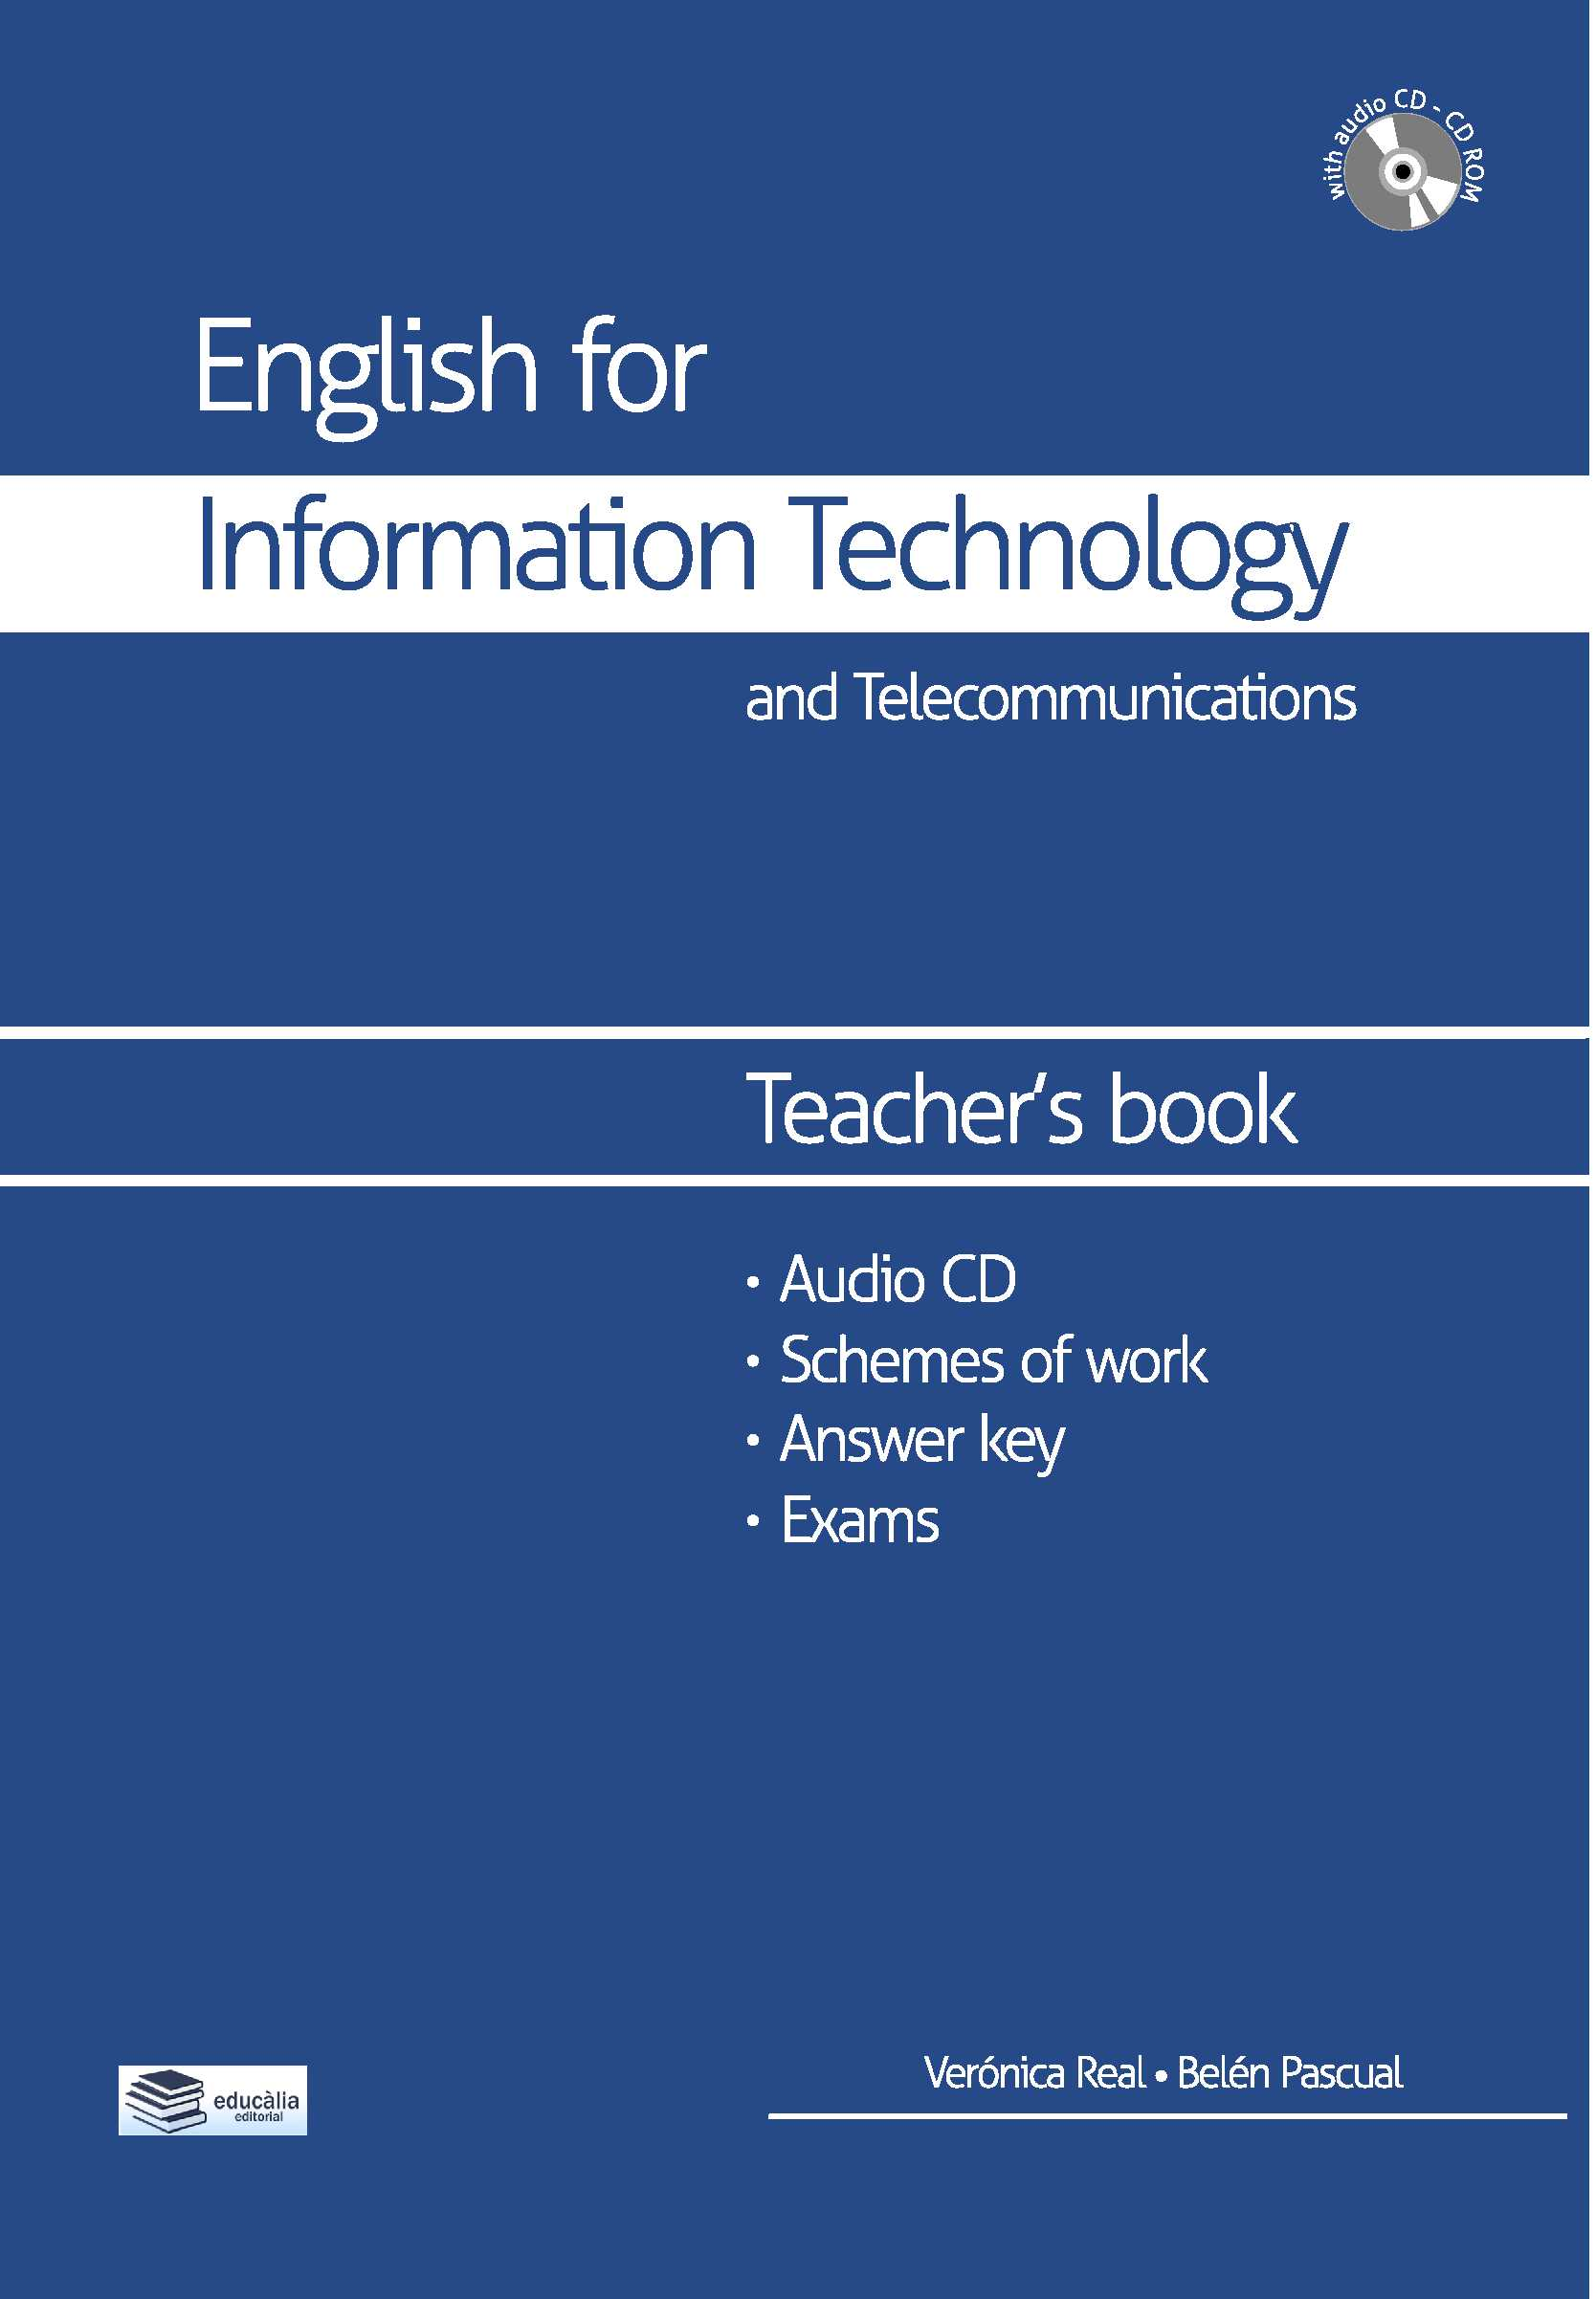 English for Information Technology and Telecommunications (Teacher's Resource Book)